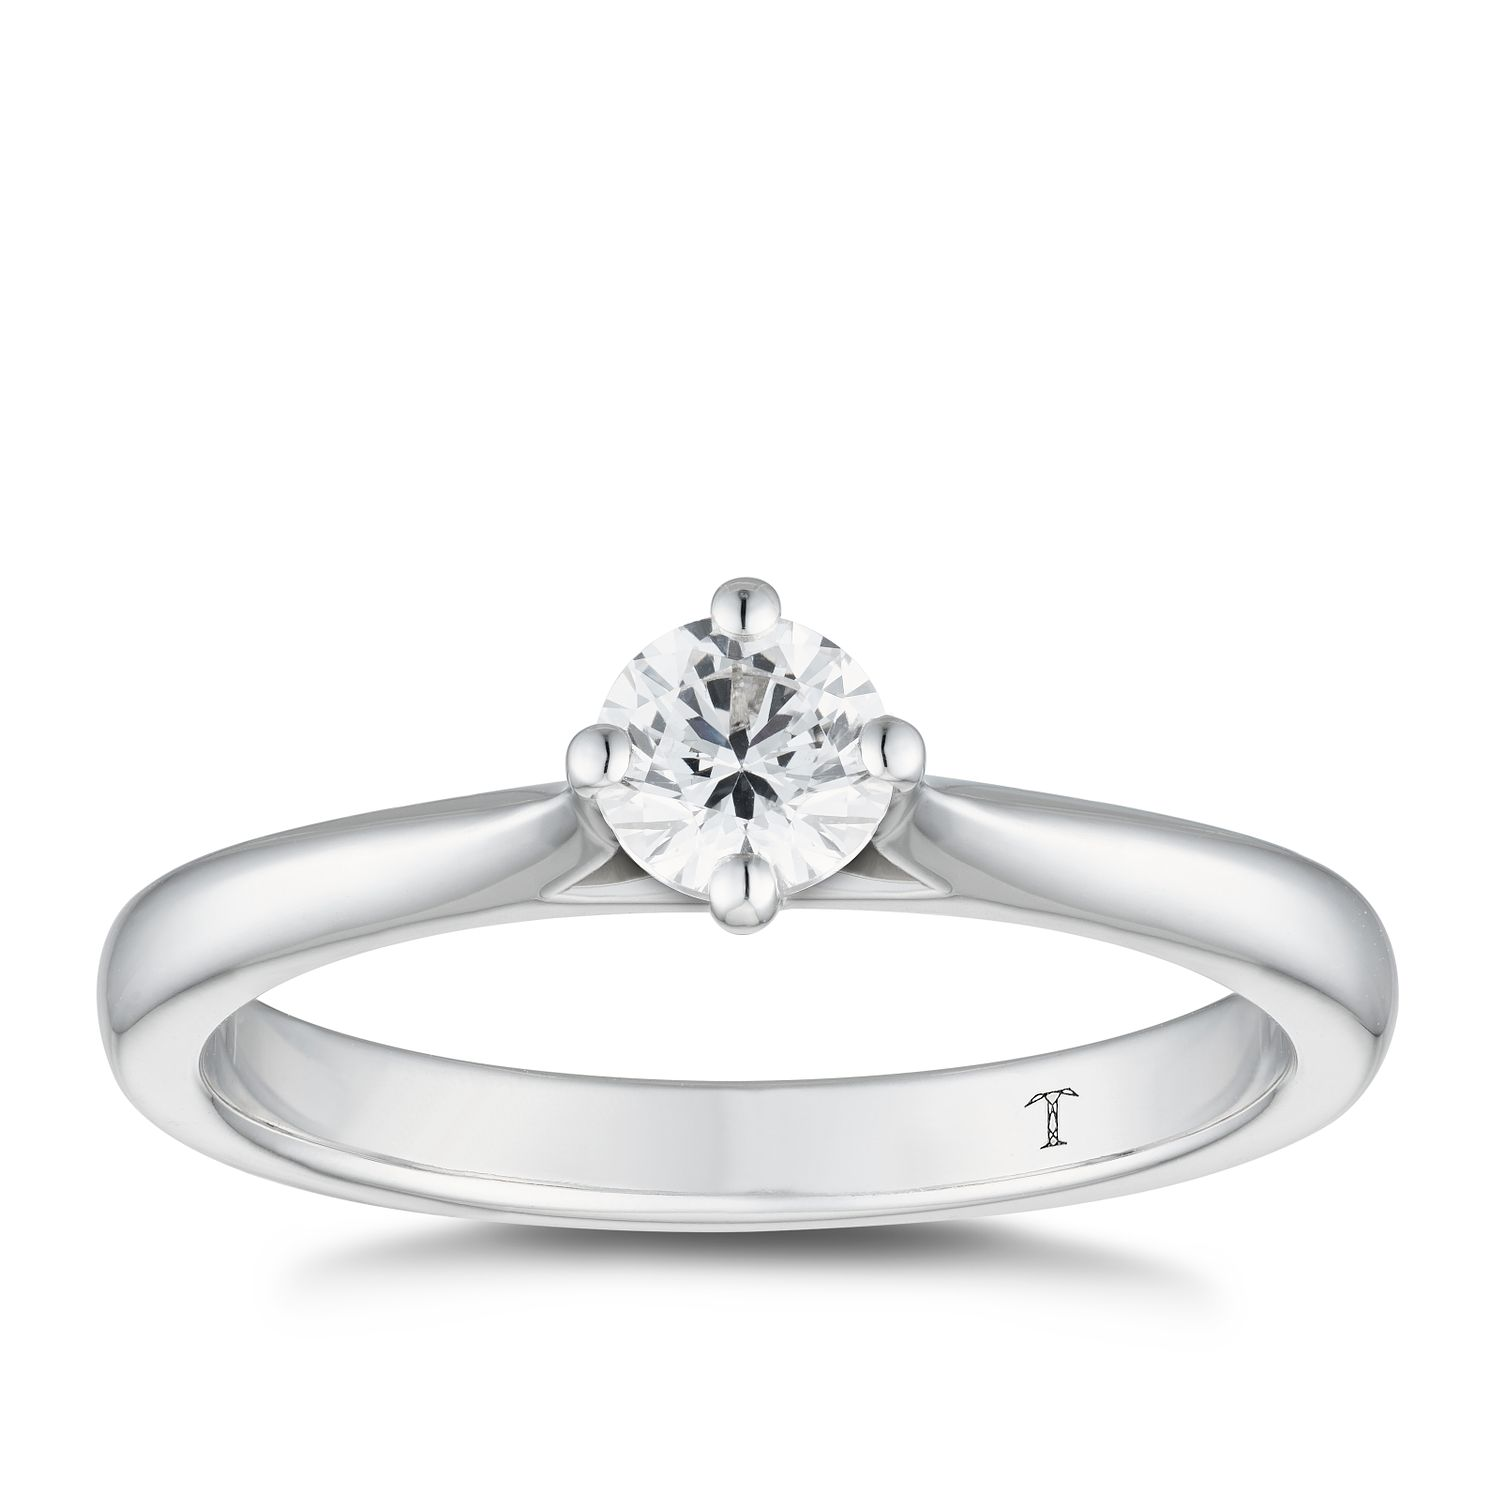 Tolkowsky 18ct White Gold 0.33ct Diamond Solitaire Ring - Product number 5181321